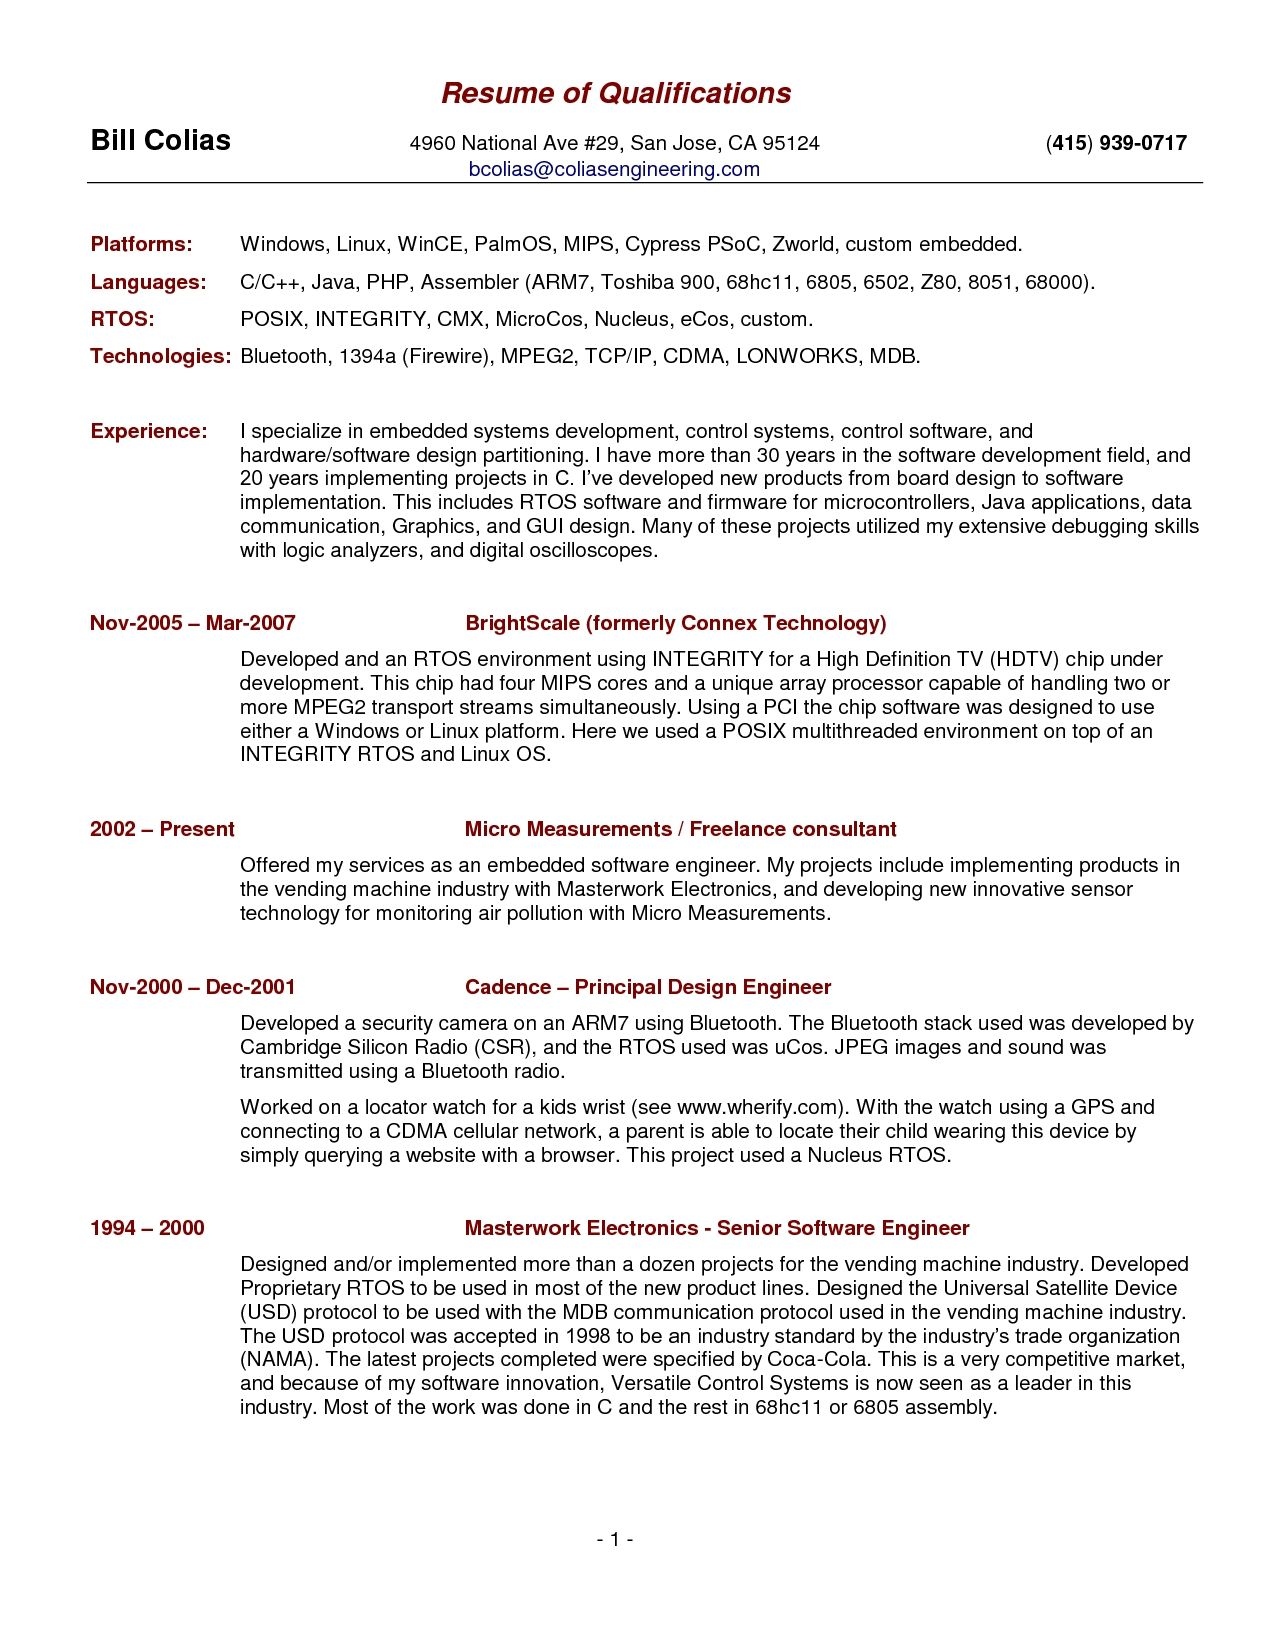 Skills Resume Template Qualifications For A Resume Examples 7F8Ea3A2A New Resume Skills